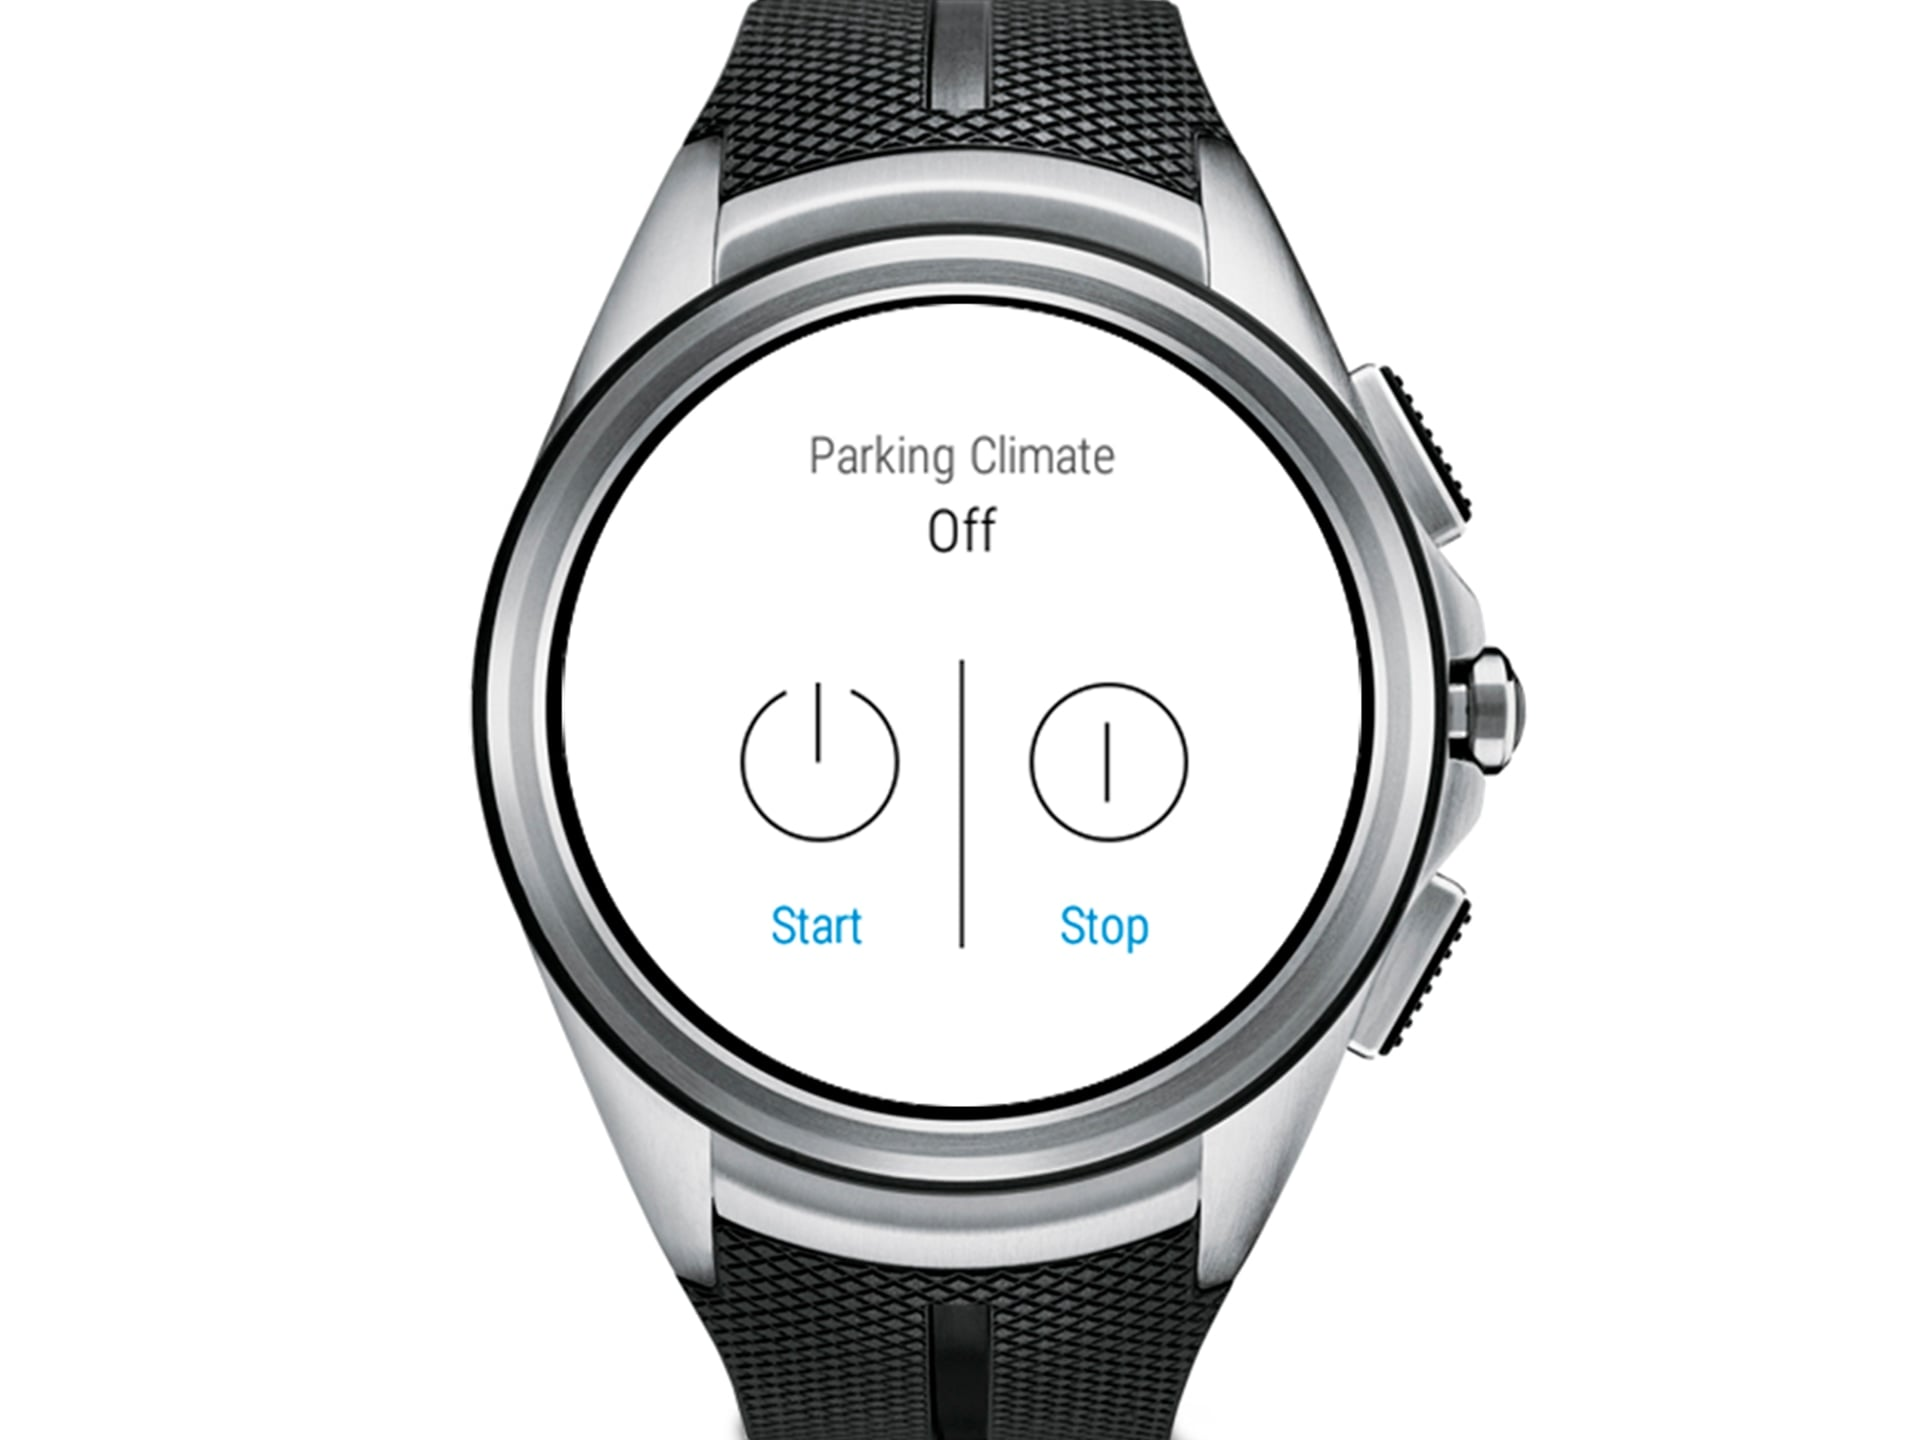 A close up of a smartwatch with a black rubber band, displaying Parking Climate